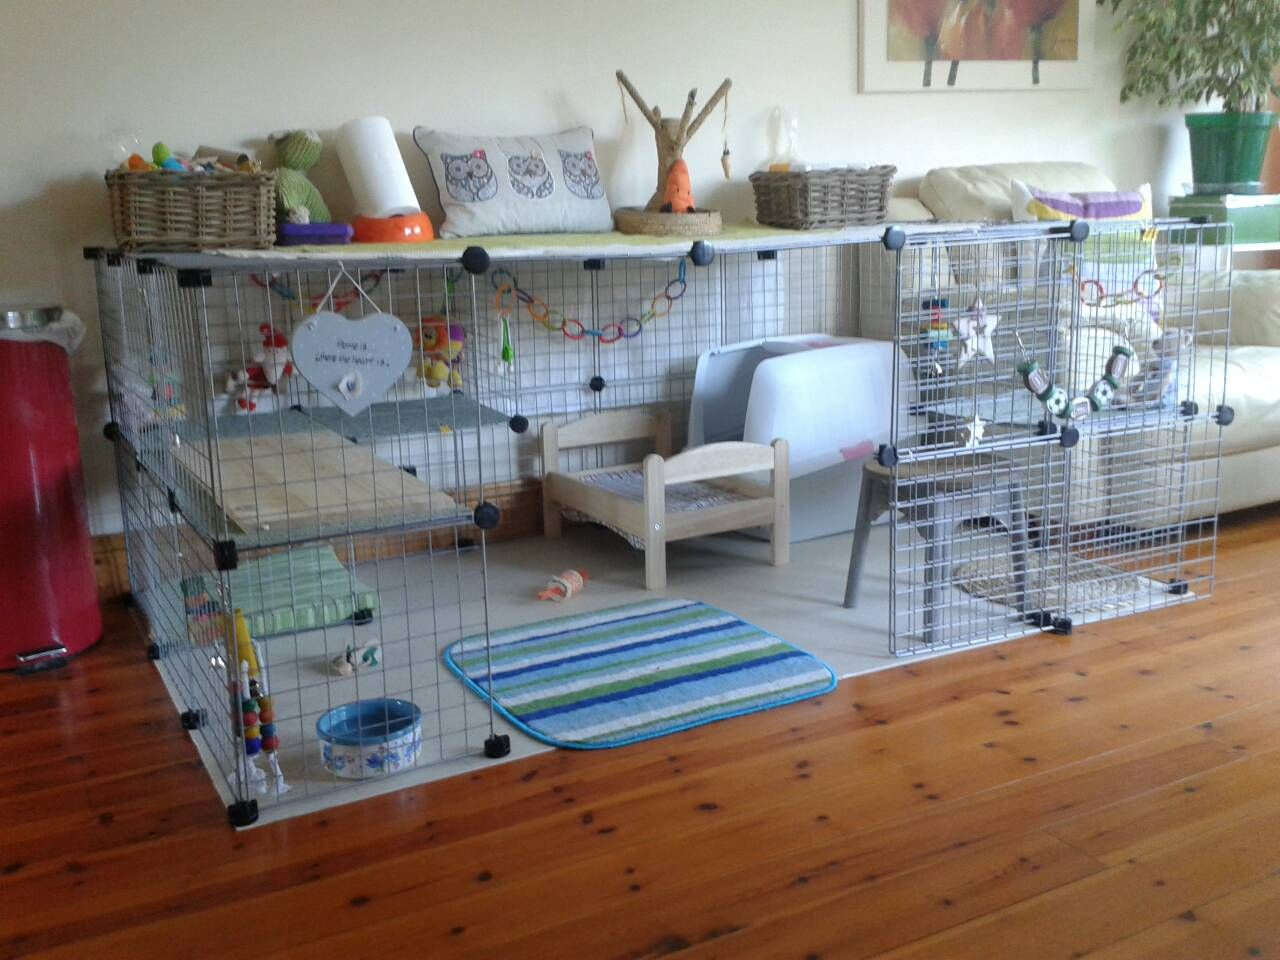 Best setup for an indoor rabbit rabbits united forum for Enclos lapin interieur